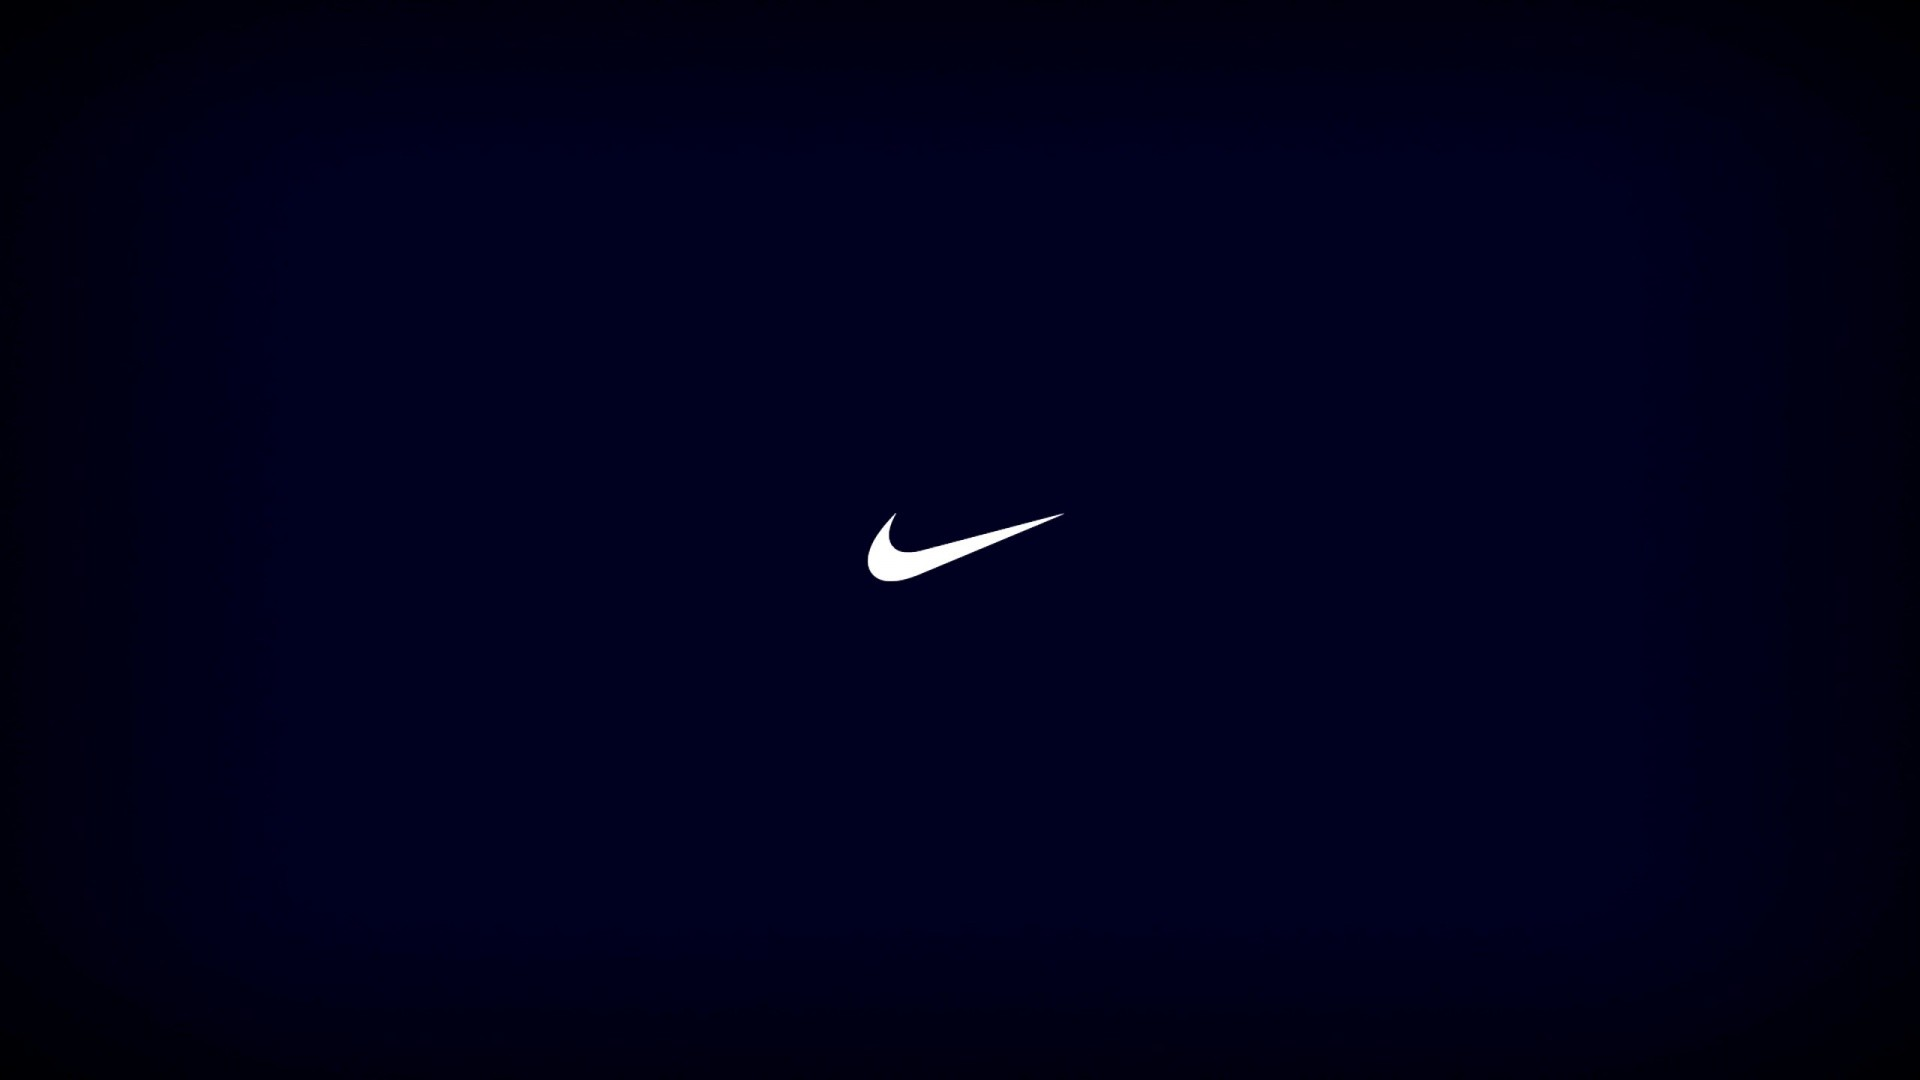 Nike Wallpaper For Laptop 60 Images